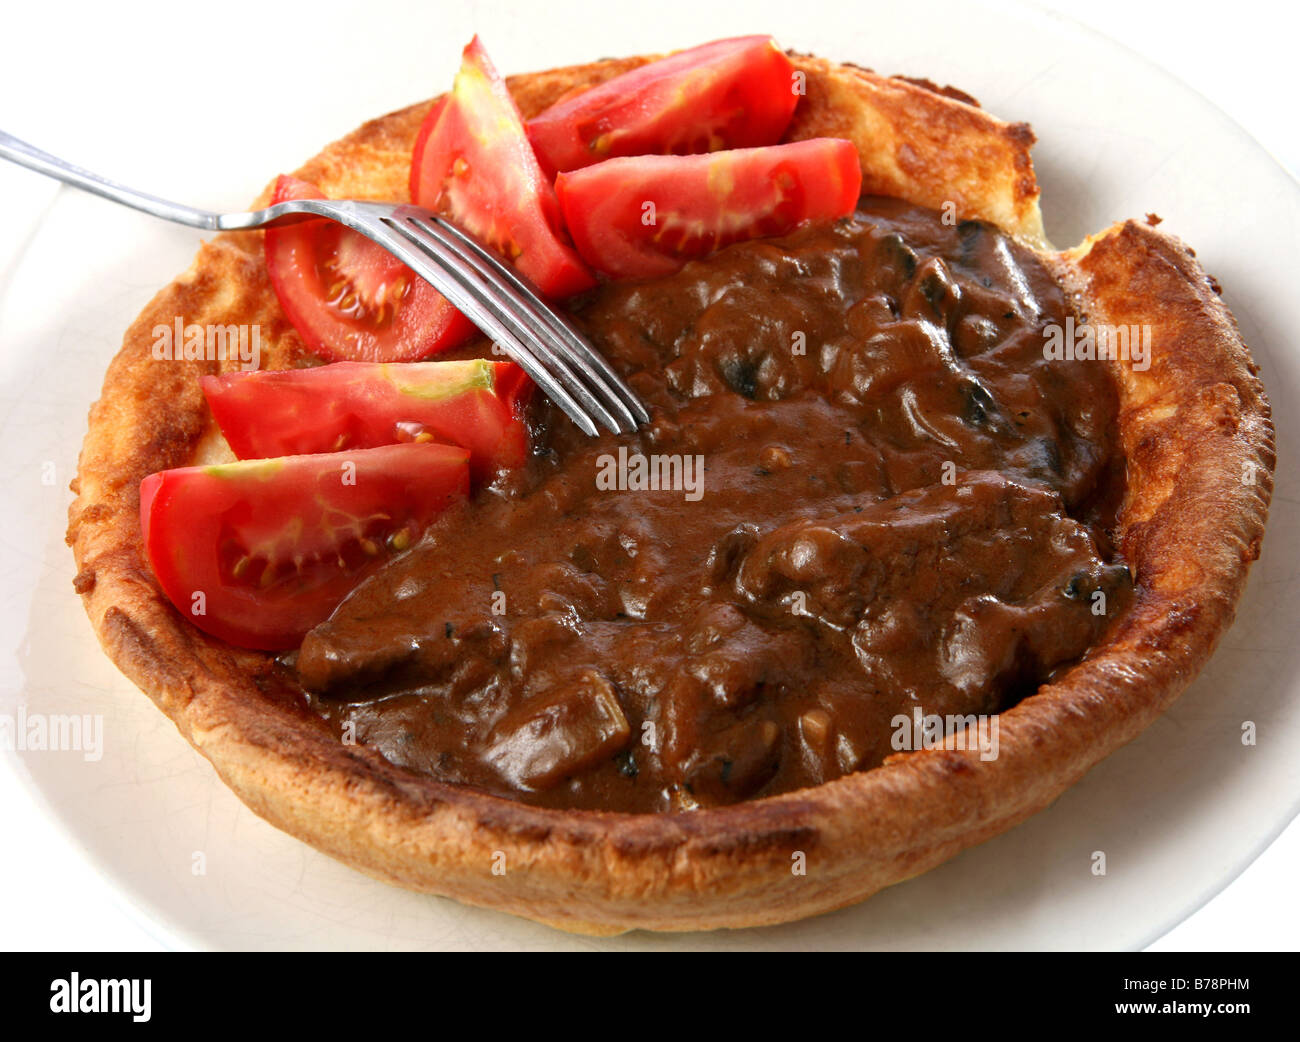 A Big Yorkshire Pudding Filled With Stewed Beef And Mushrooms In